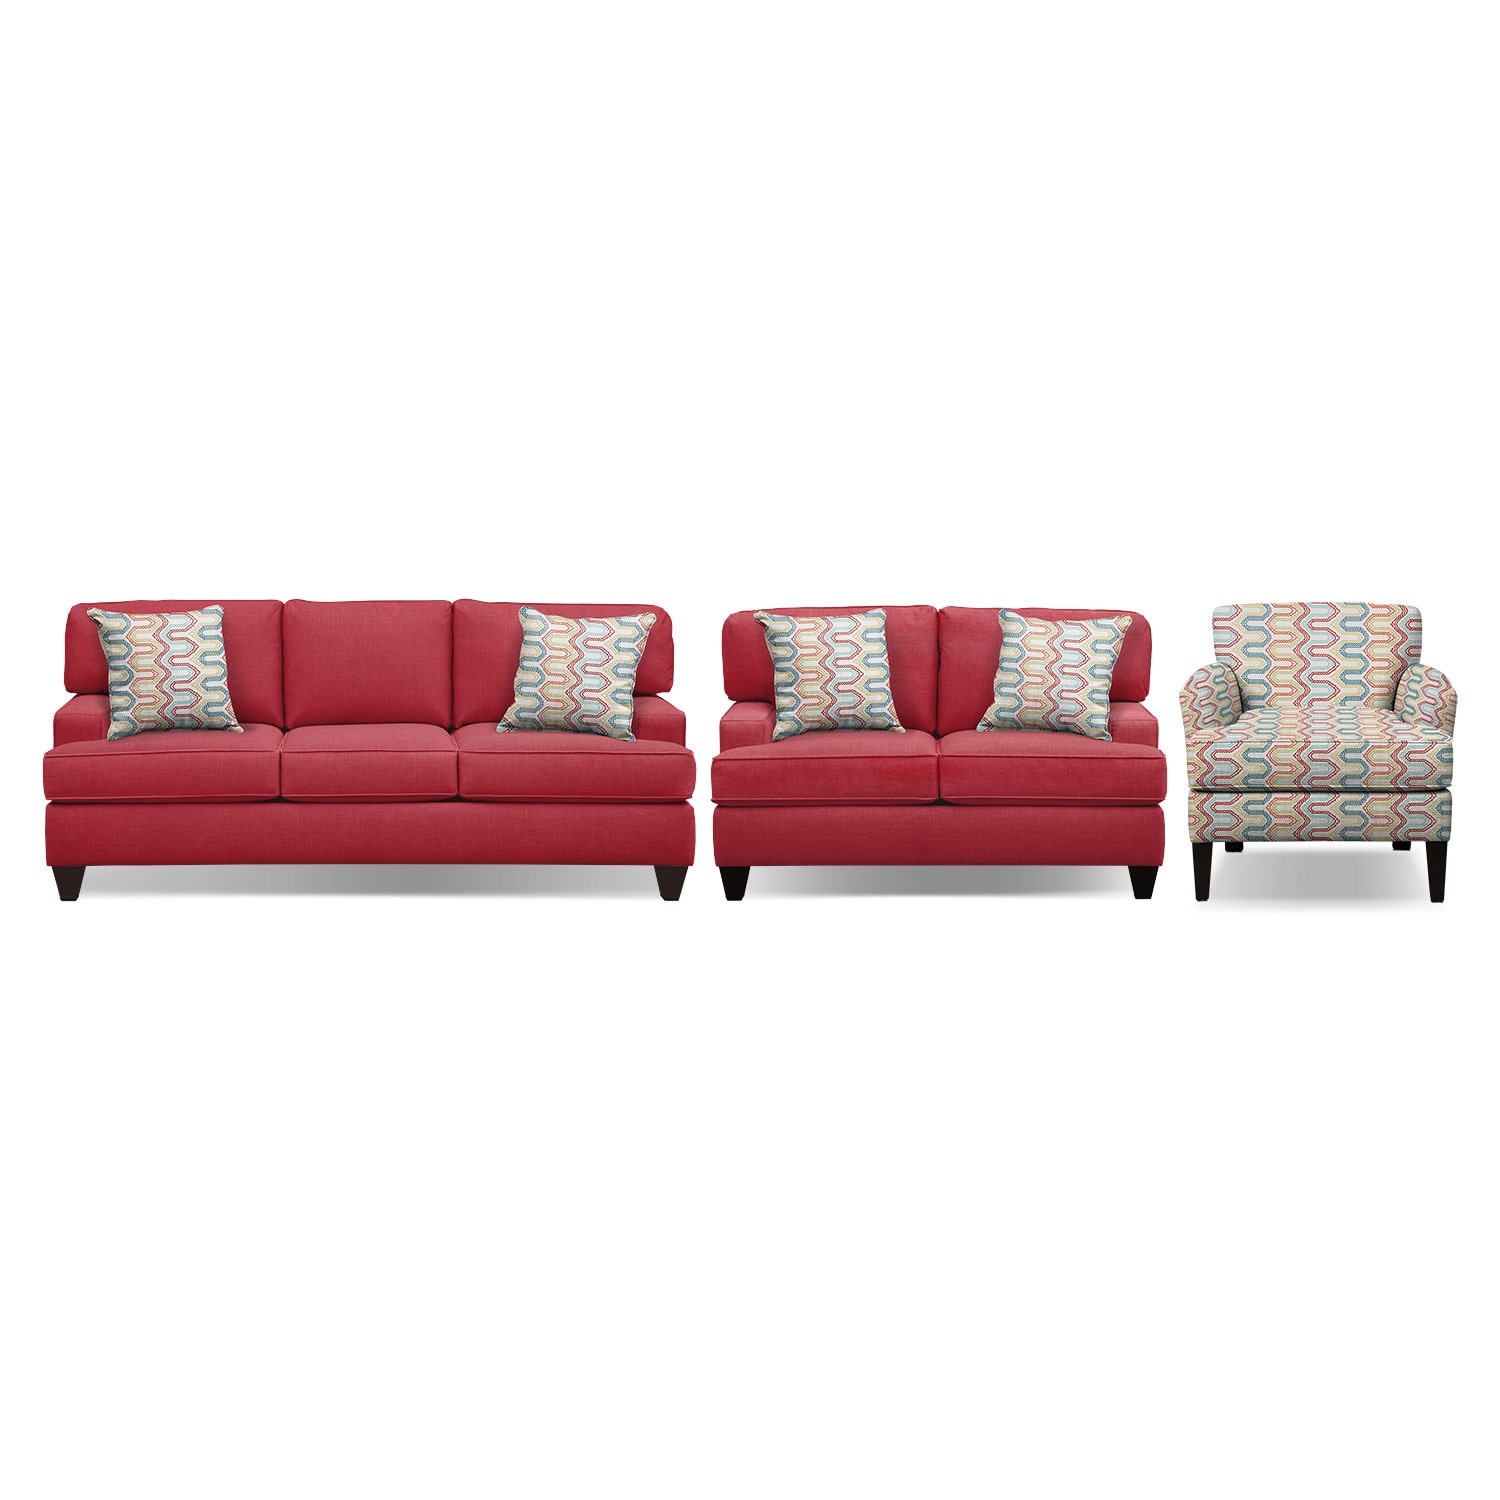 "Conner Red 87"" Innerspring Sleeper Sofa, 63"" Sofa and Accent Chair Set"